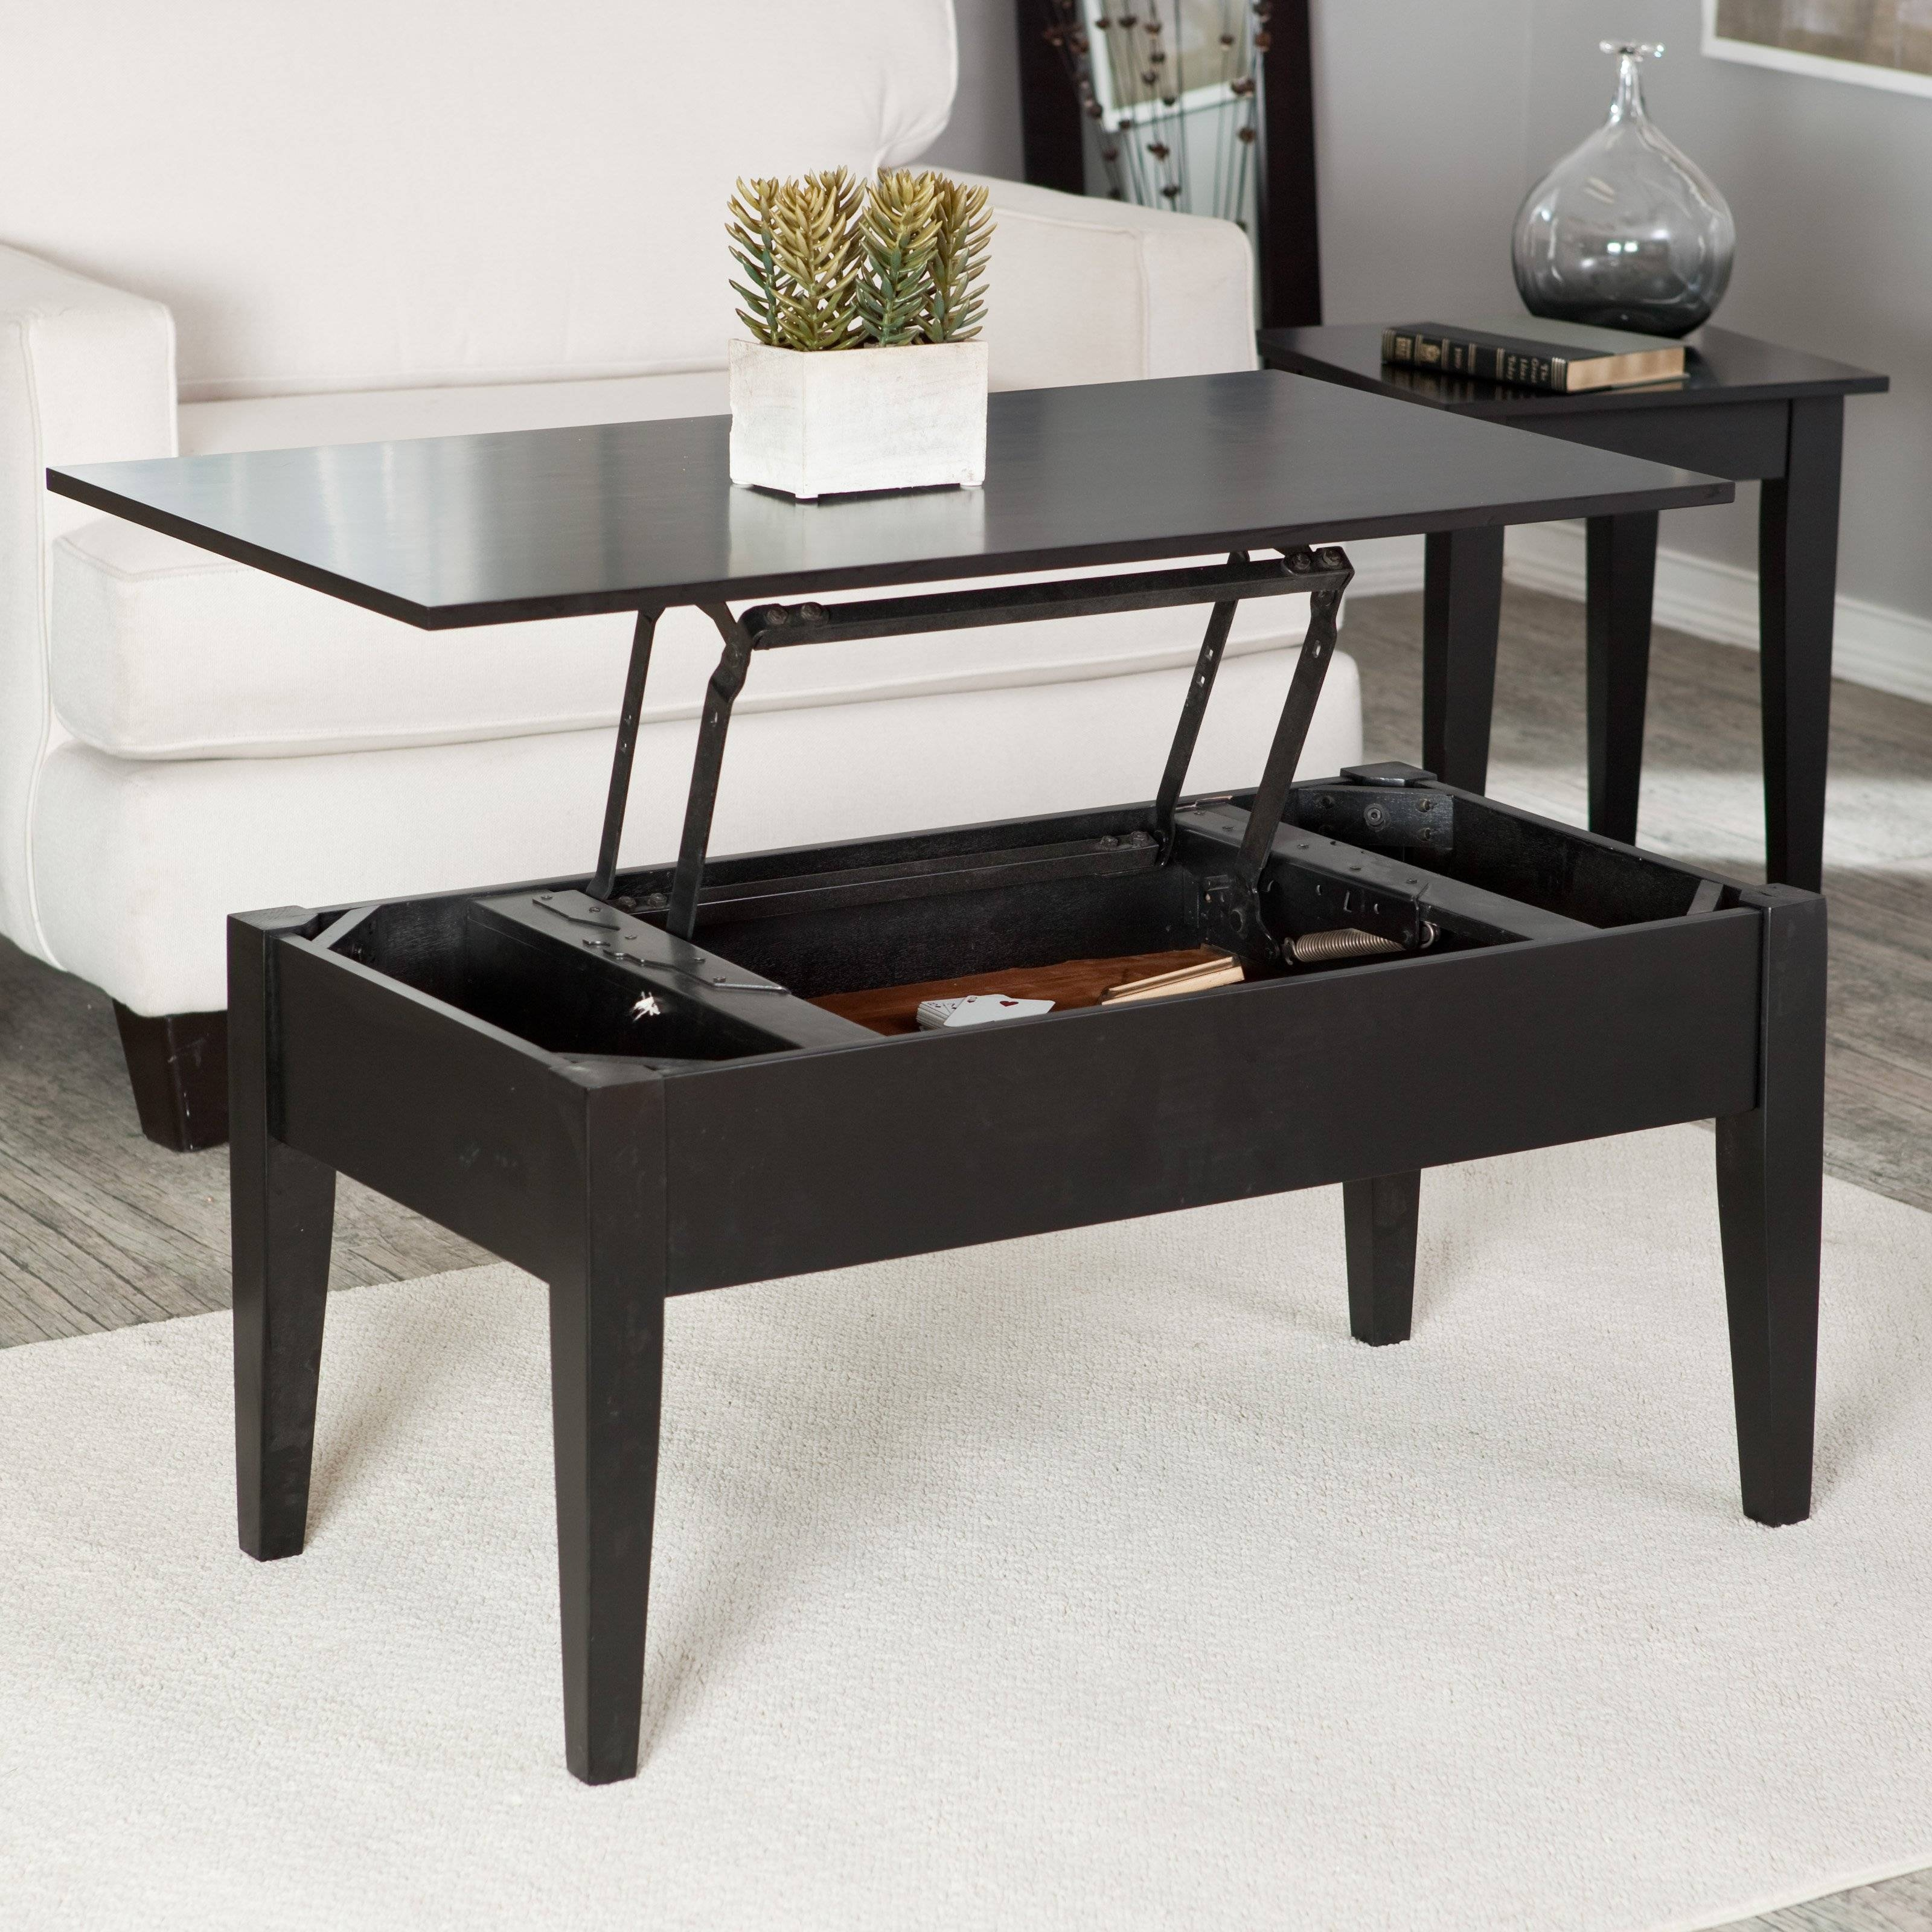 Turner Lift Top Coffee Table - Espresso | Hayneedle for Hinged Top Coffee Tables (Image 27 of 30)